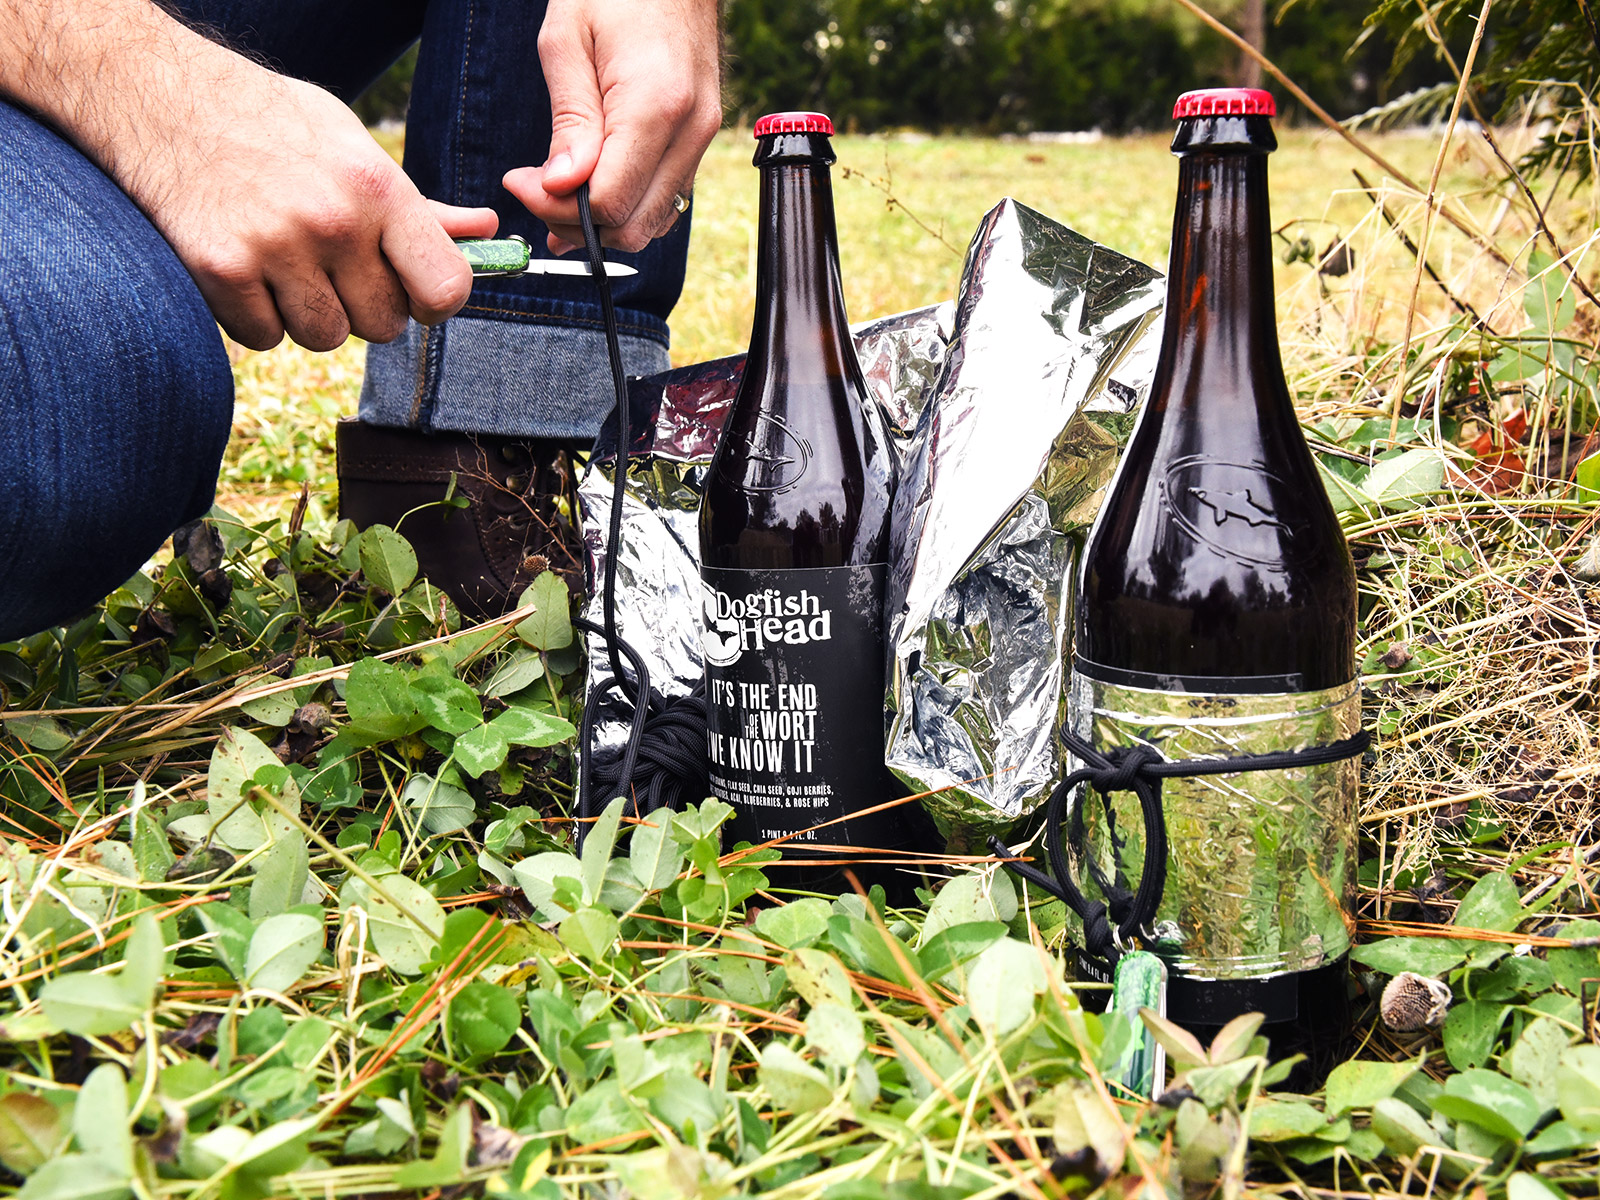 Dogfish Head Is Releasing a Survivalist Beer Built for the Prepper Crowd